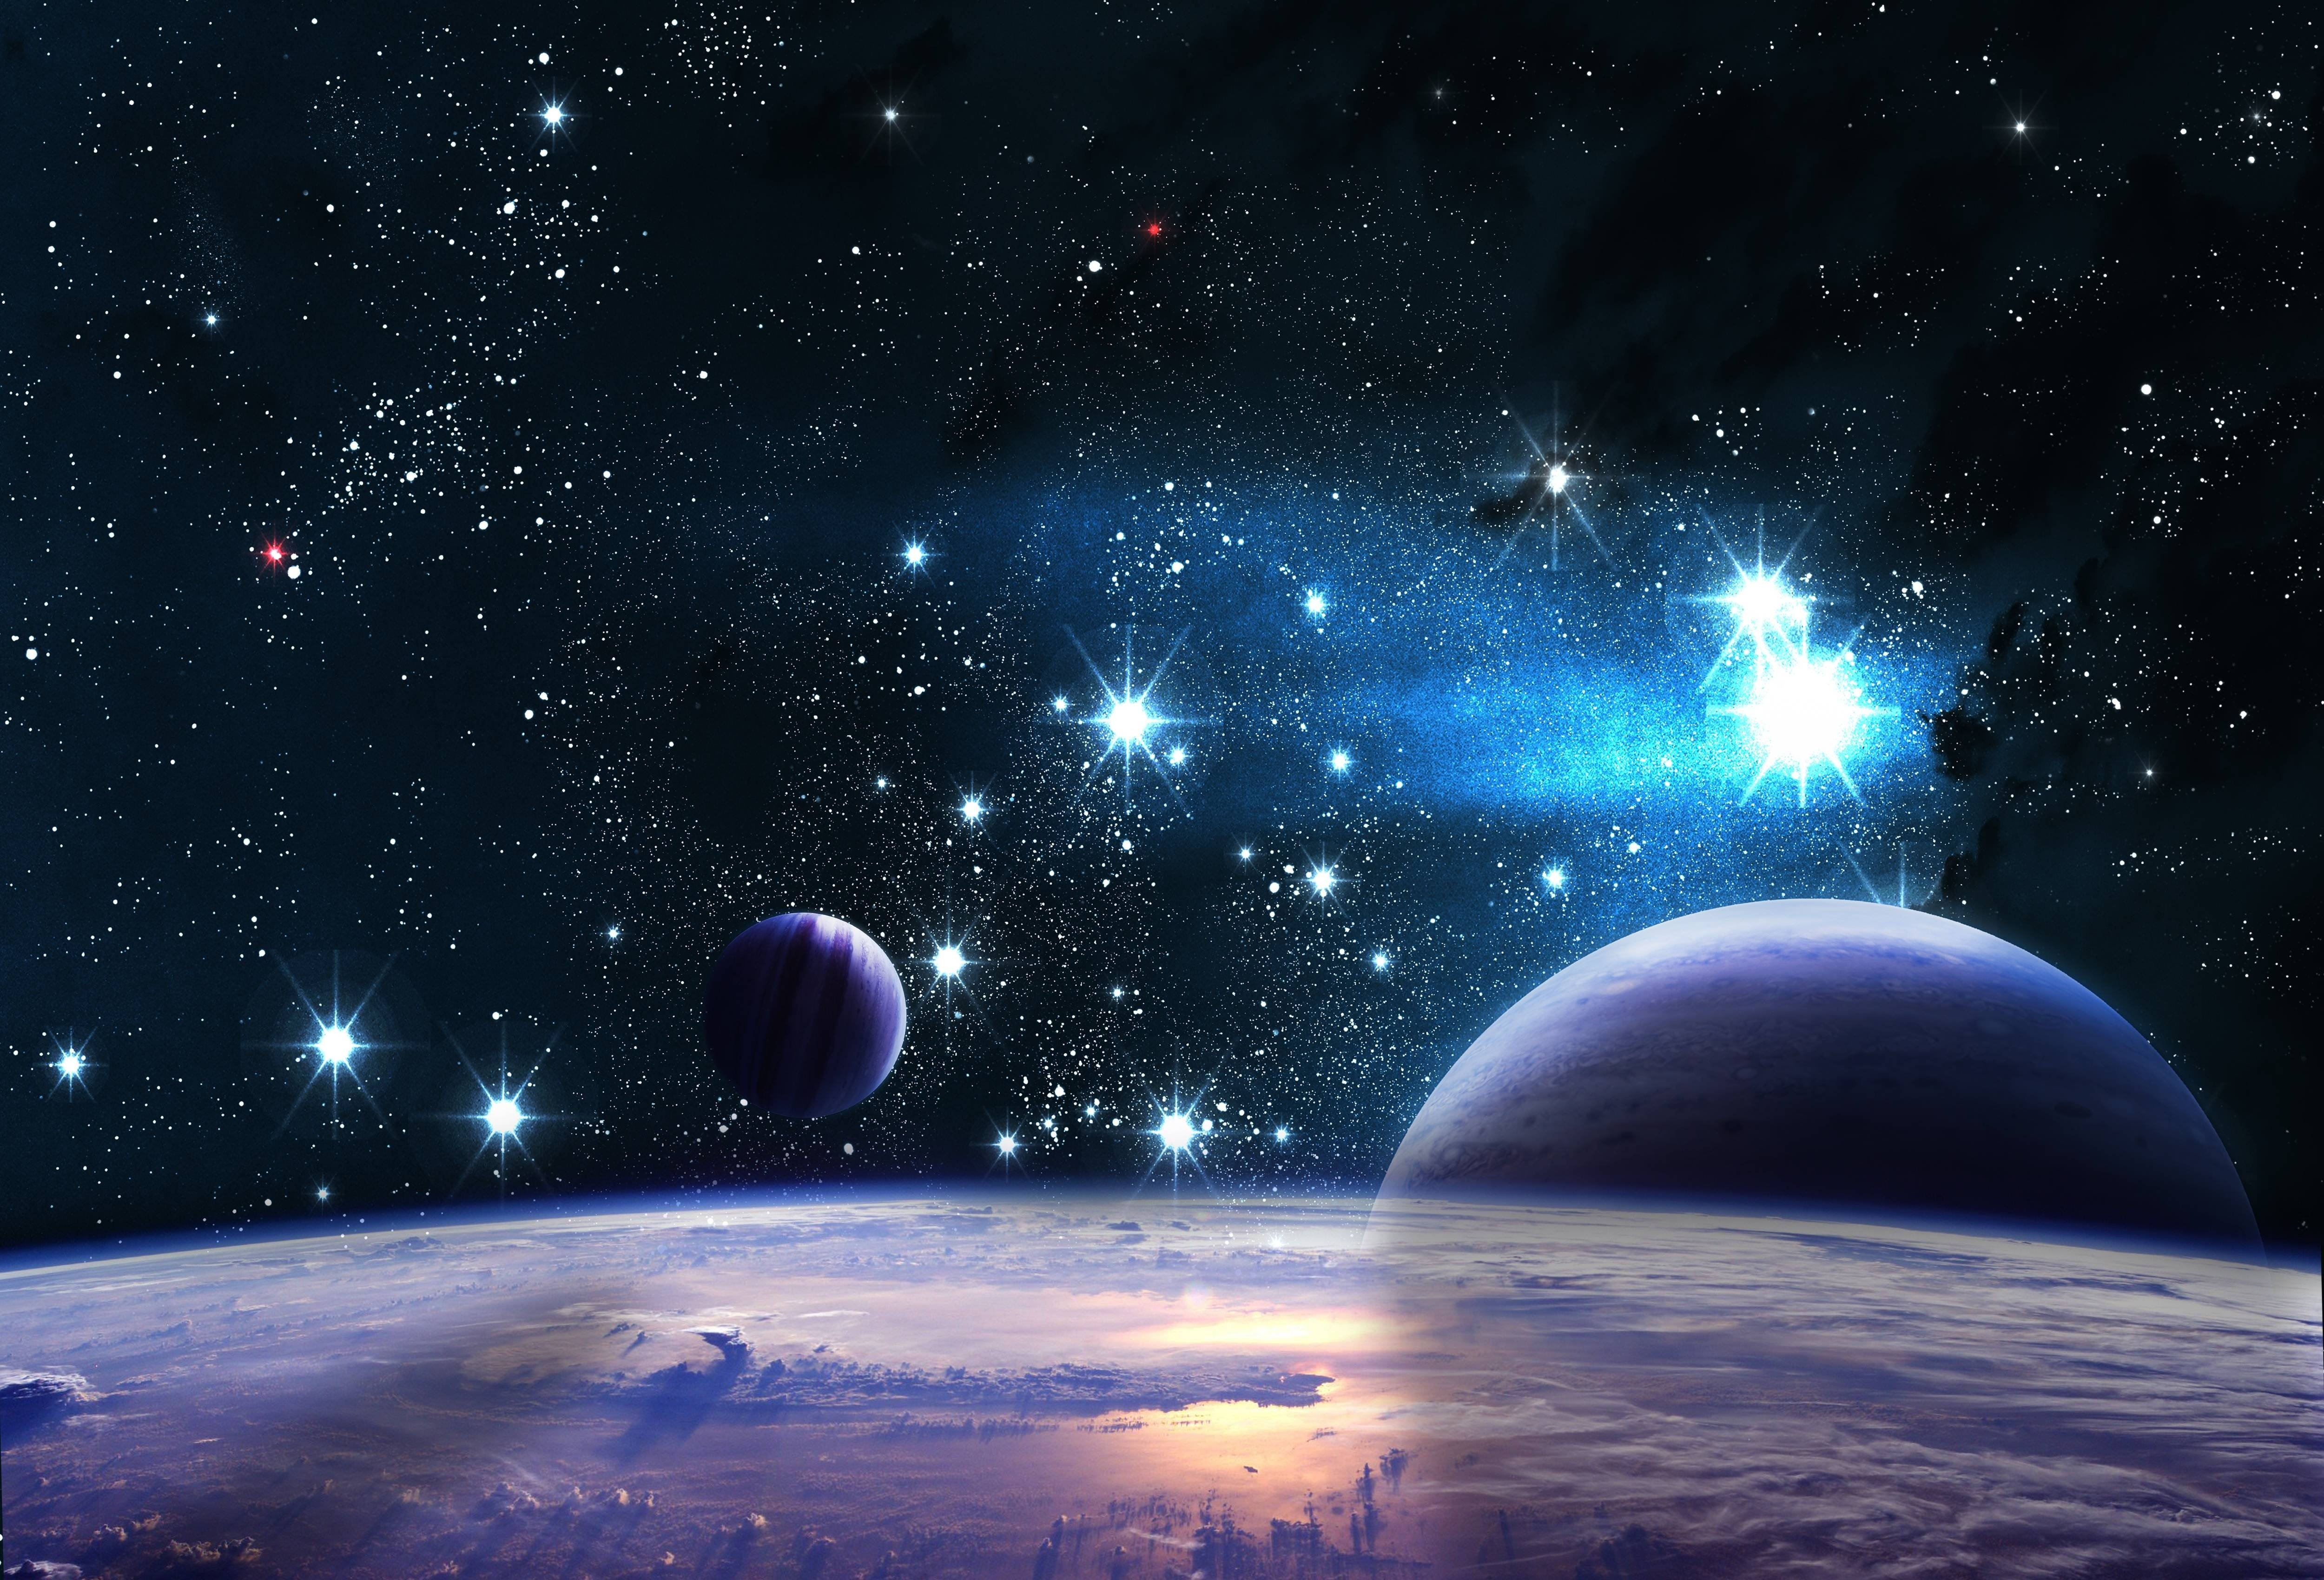 universe stars planets and themes - photo #8